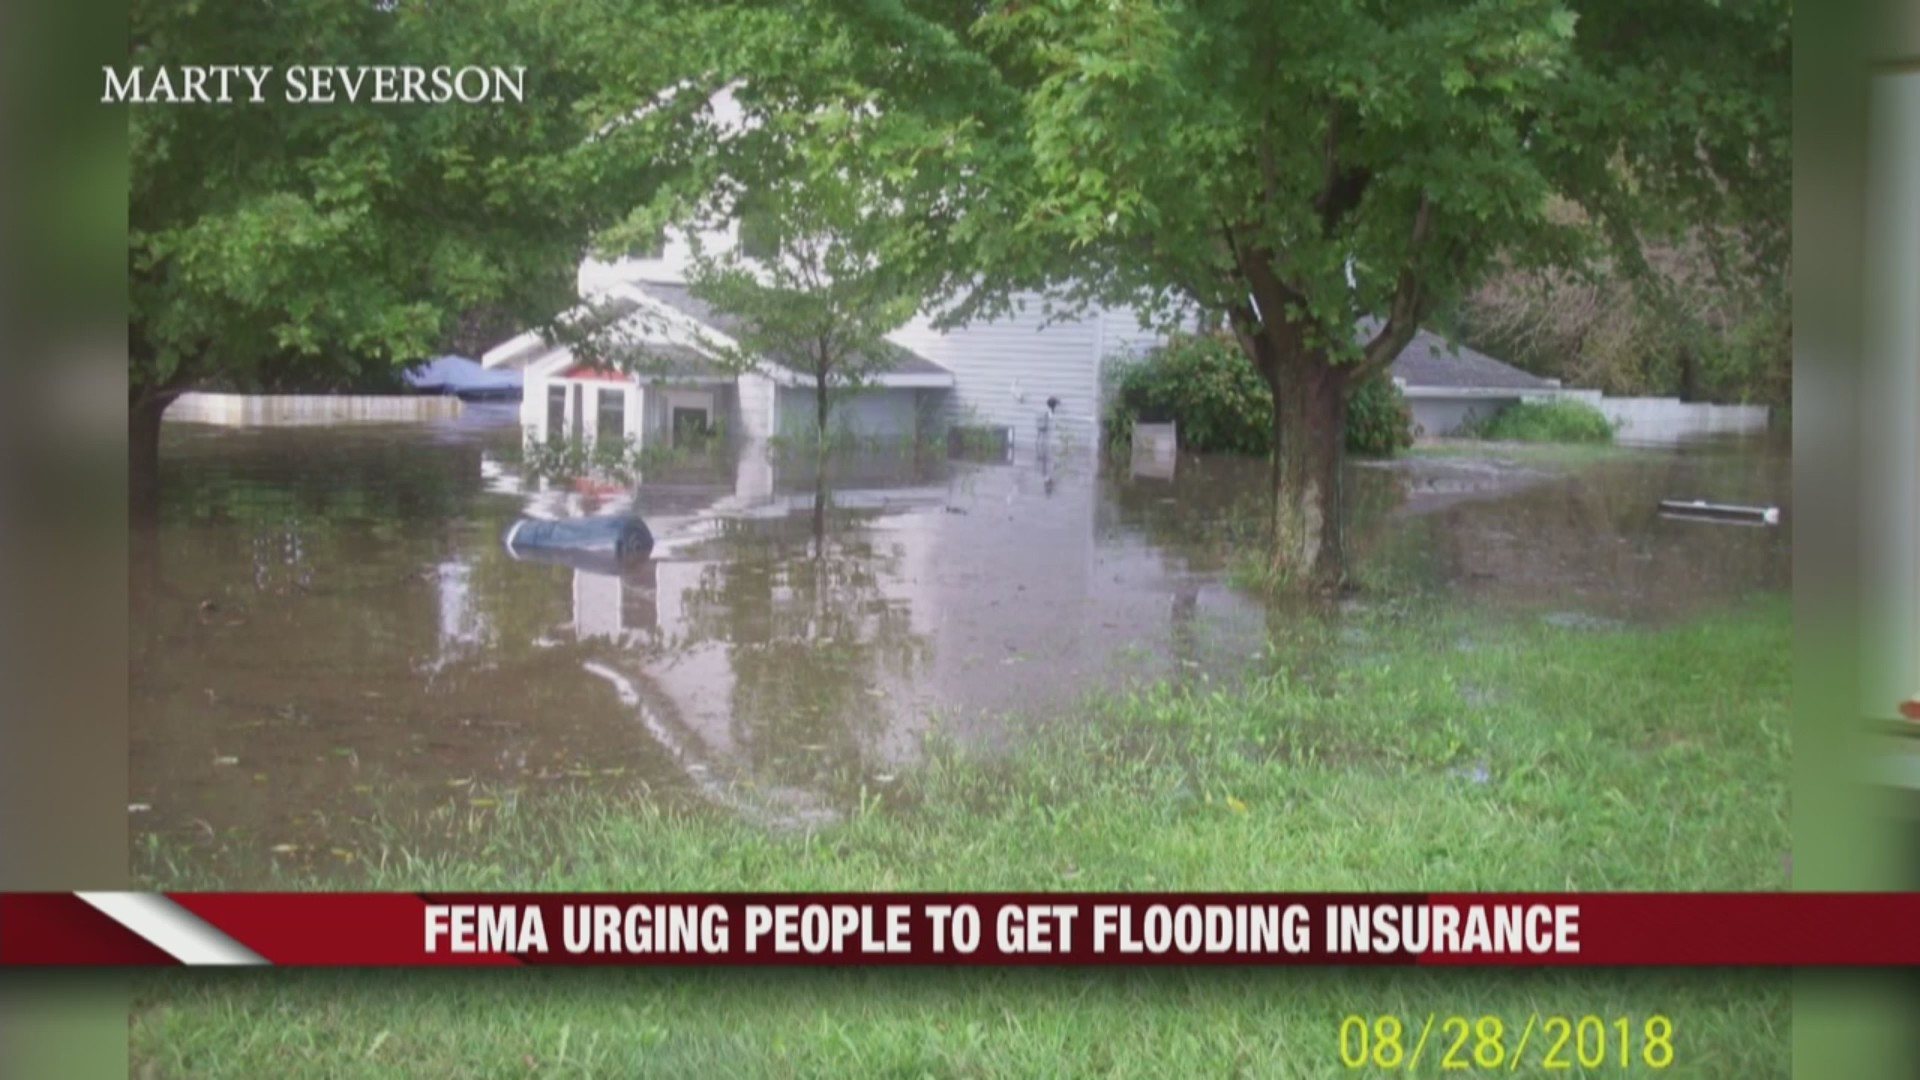 Flooded house FEMA urges flood insurance